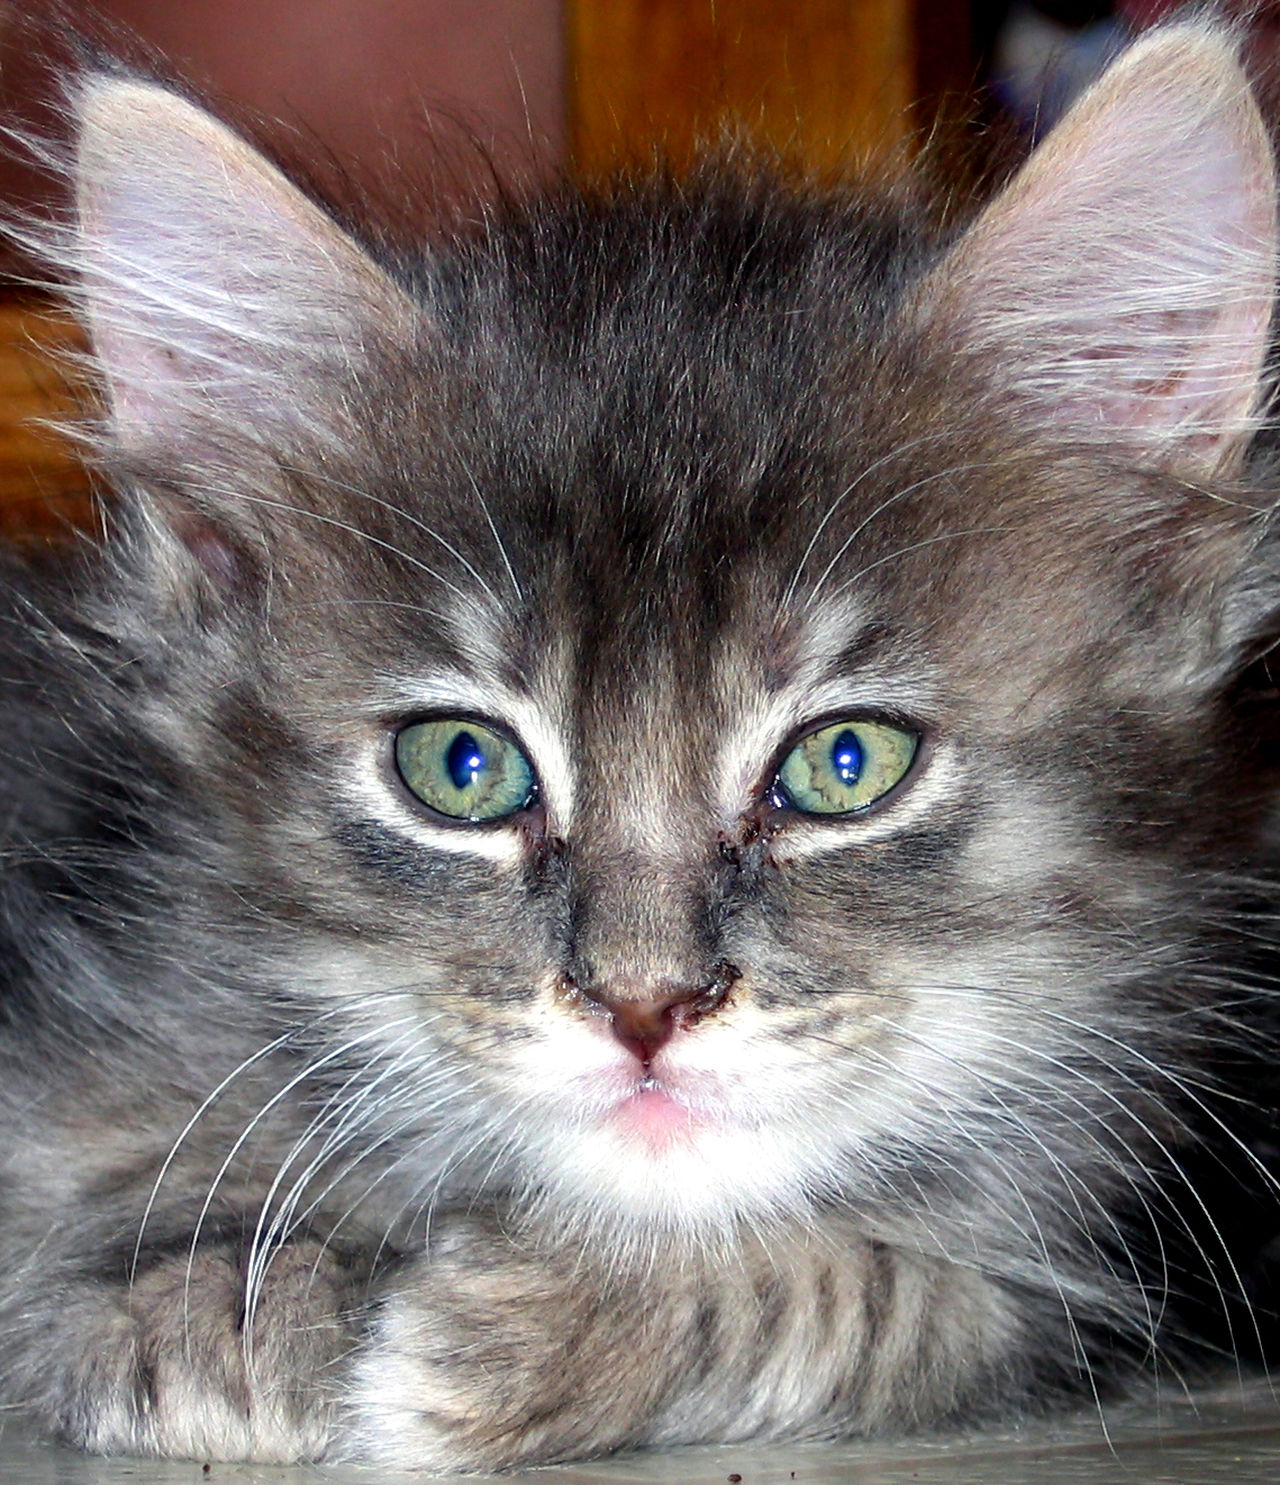 Animal Themes Close-up Day Domestic Animals Domestic Cat Feline Indoors  Looking At Camera Maine Coon Cat Mammal No People One Animal Persian Cat  Pets Portrait Whisker